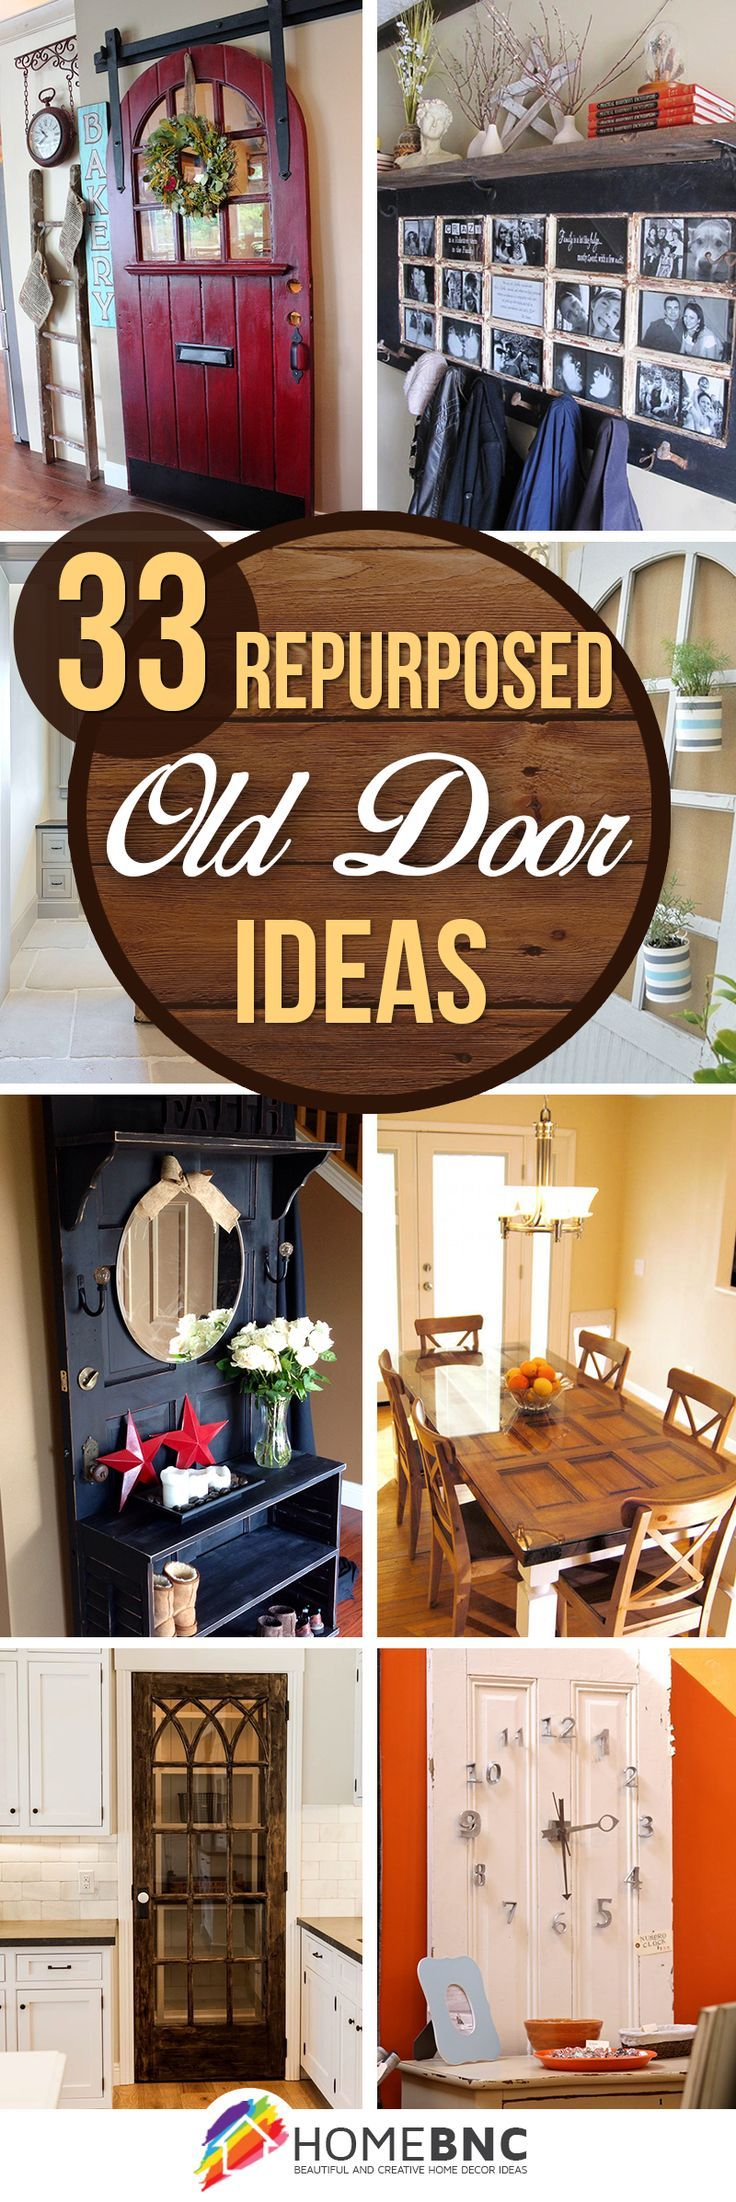 I love these! So many amazing ways to repurpose doors and they look incredible. Ugh, which one to do first?!?